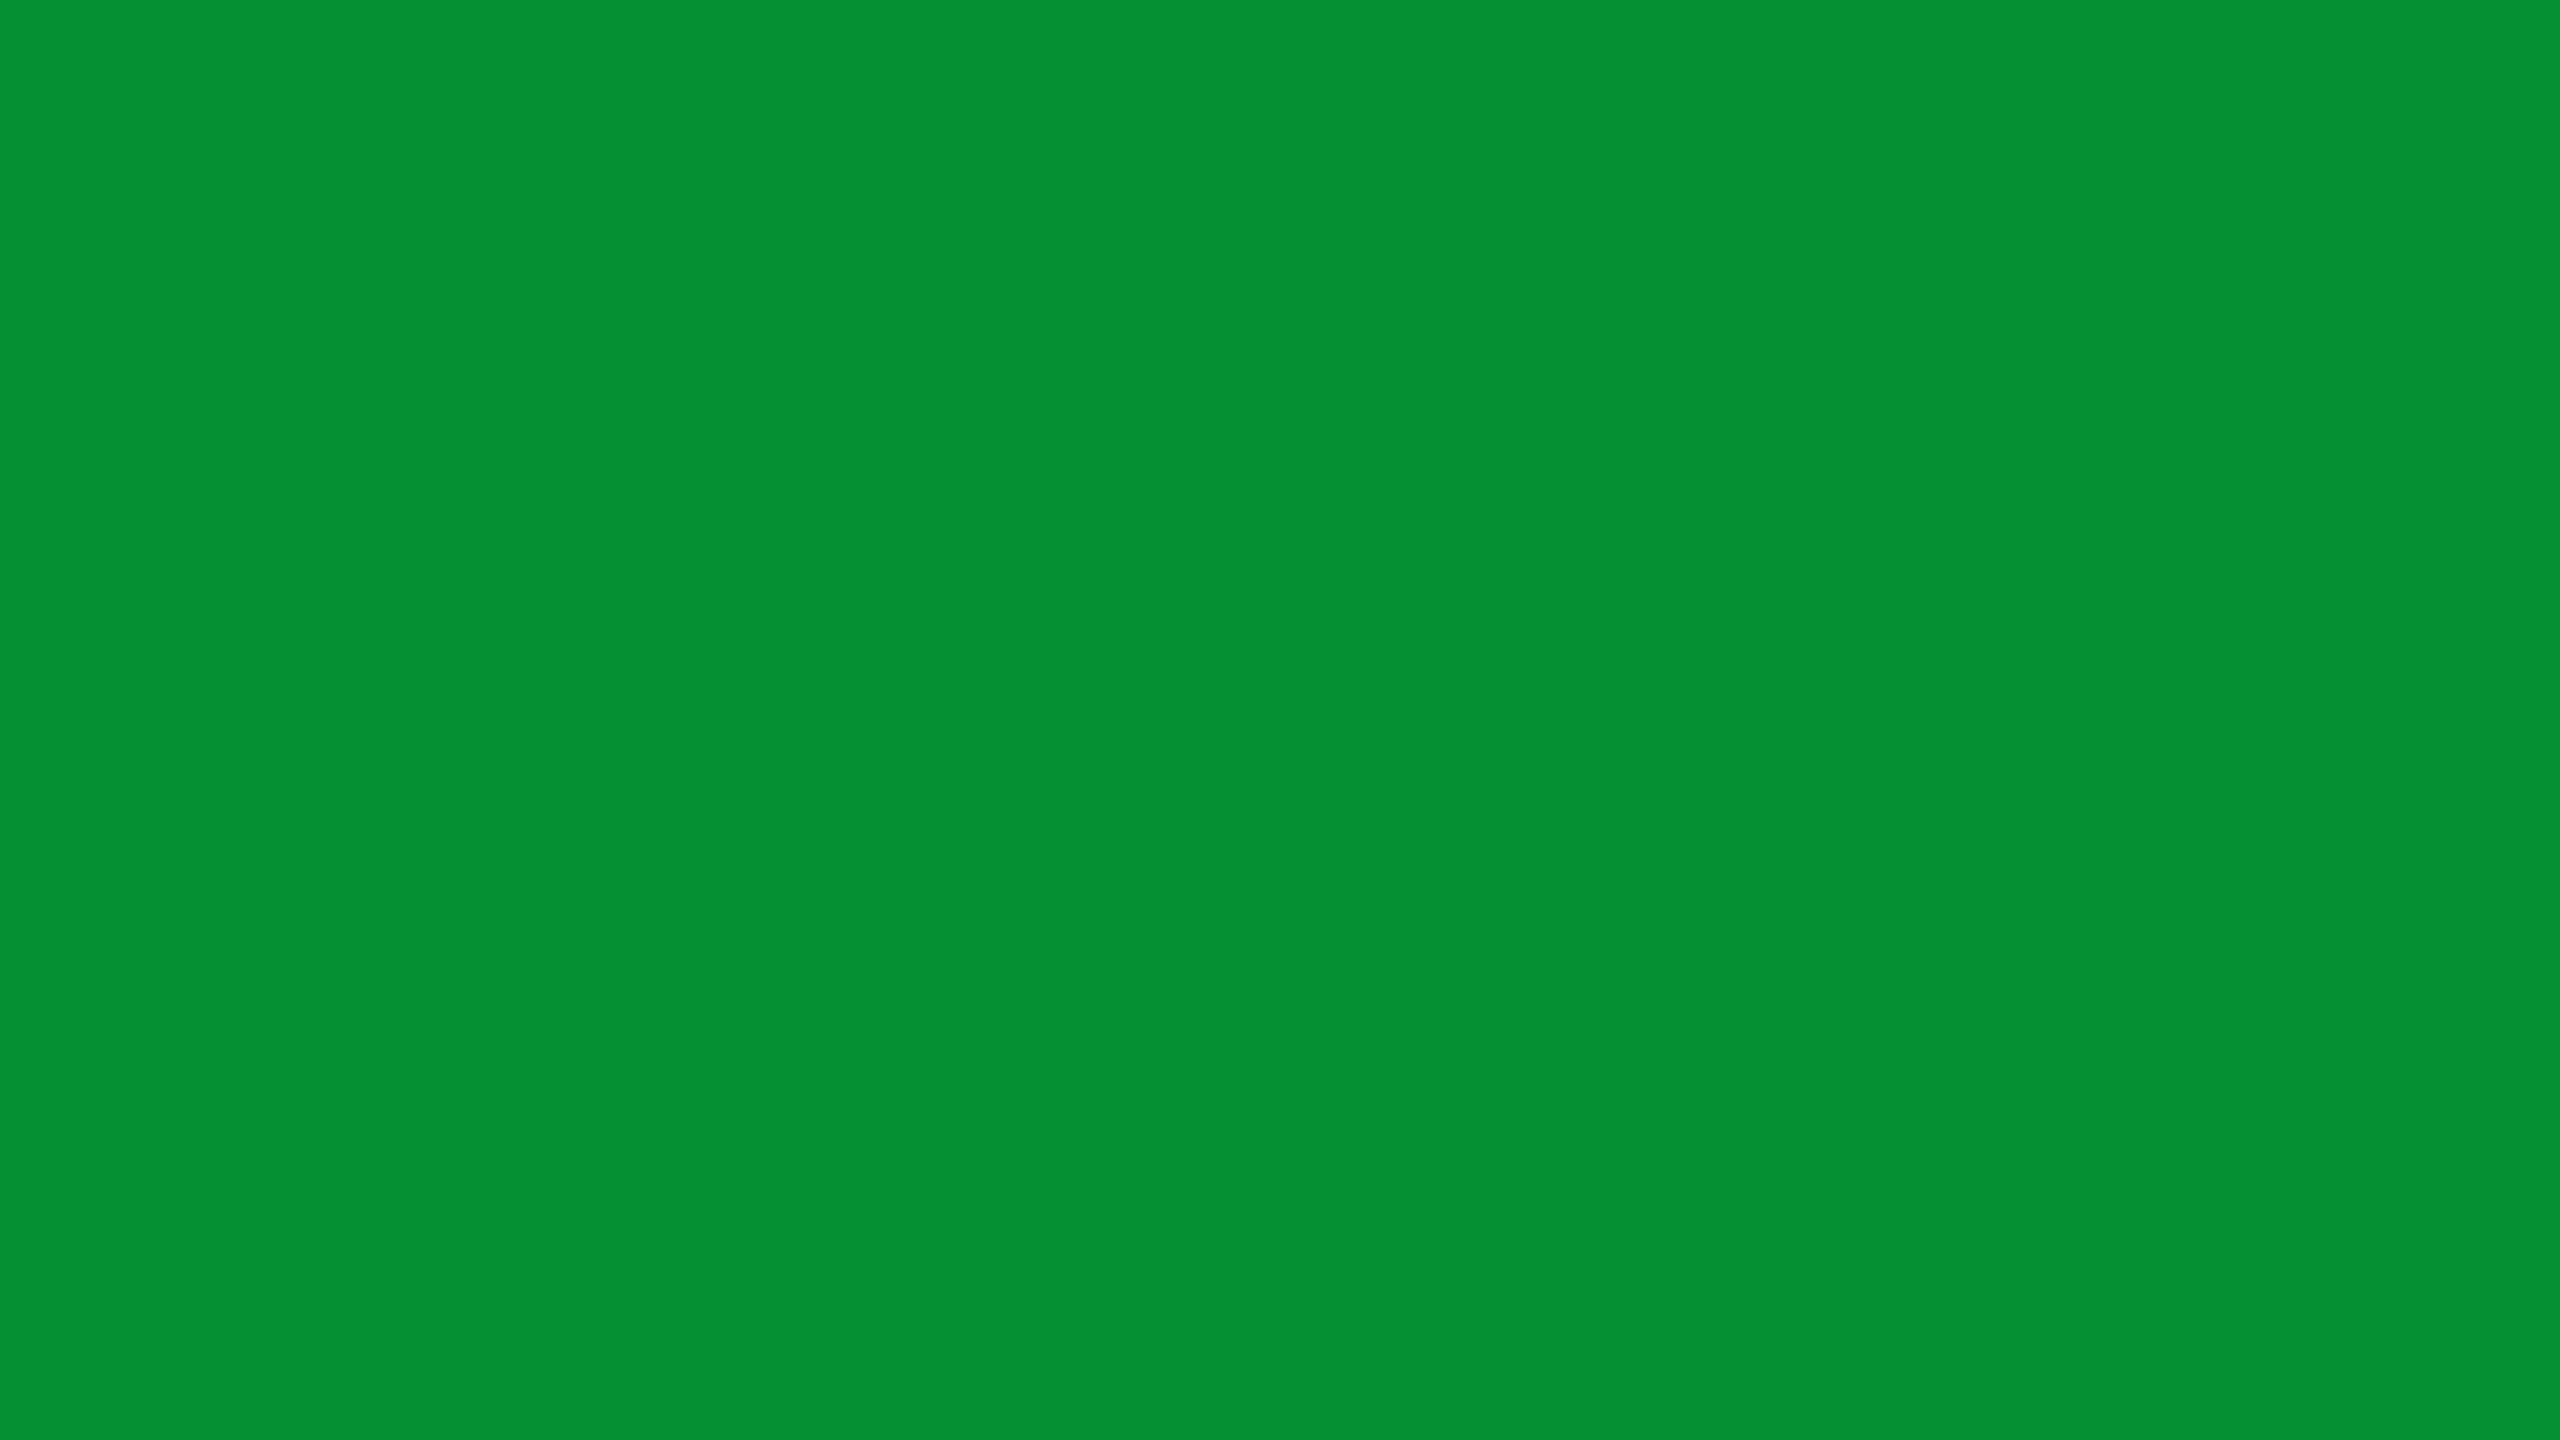 2560x1440 North Texas Green Solid Color Background